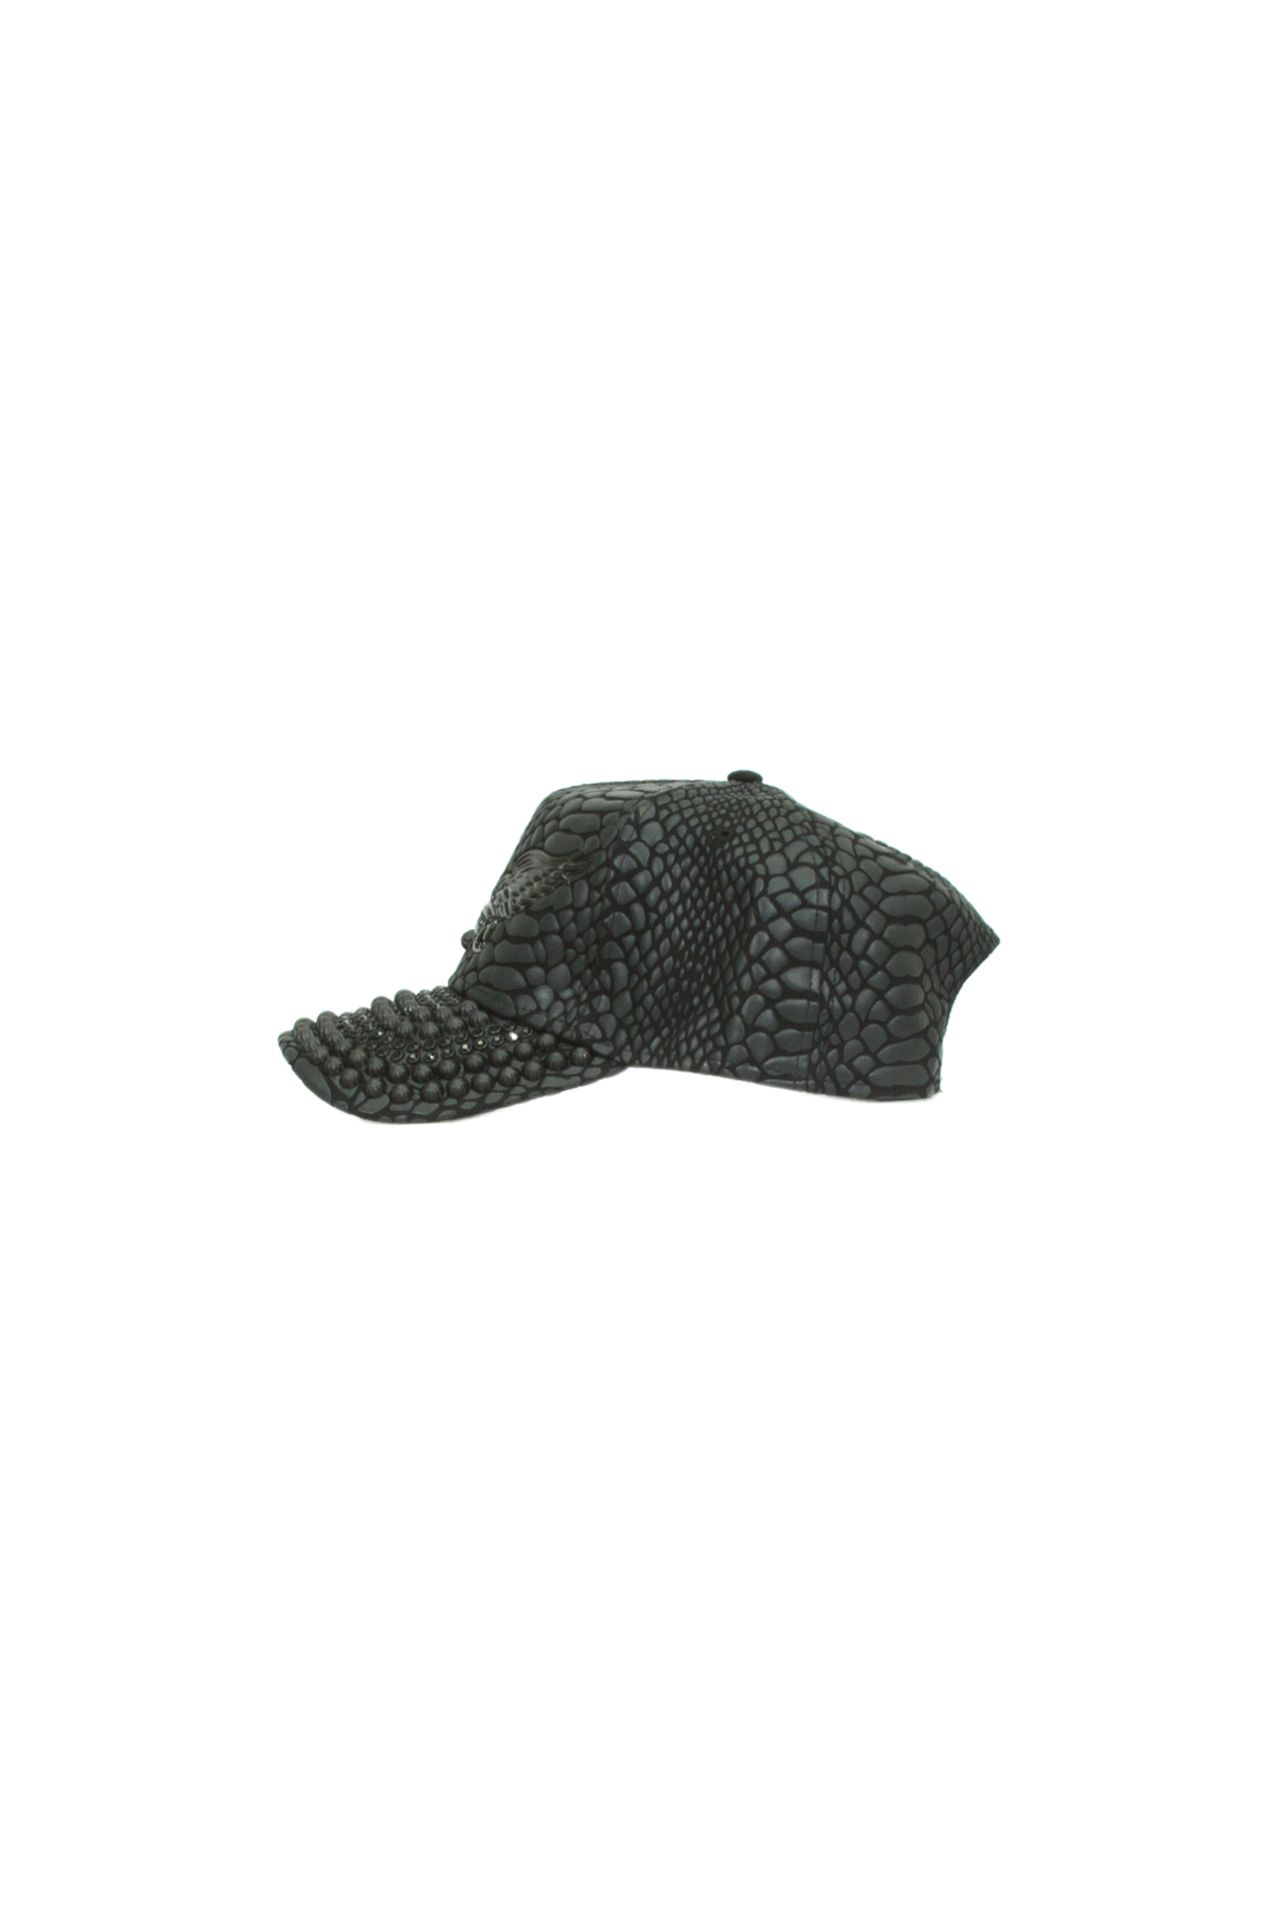 CRACKLE BLACK CAP STUDDED